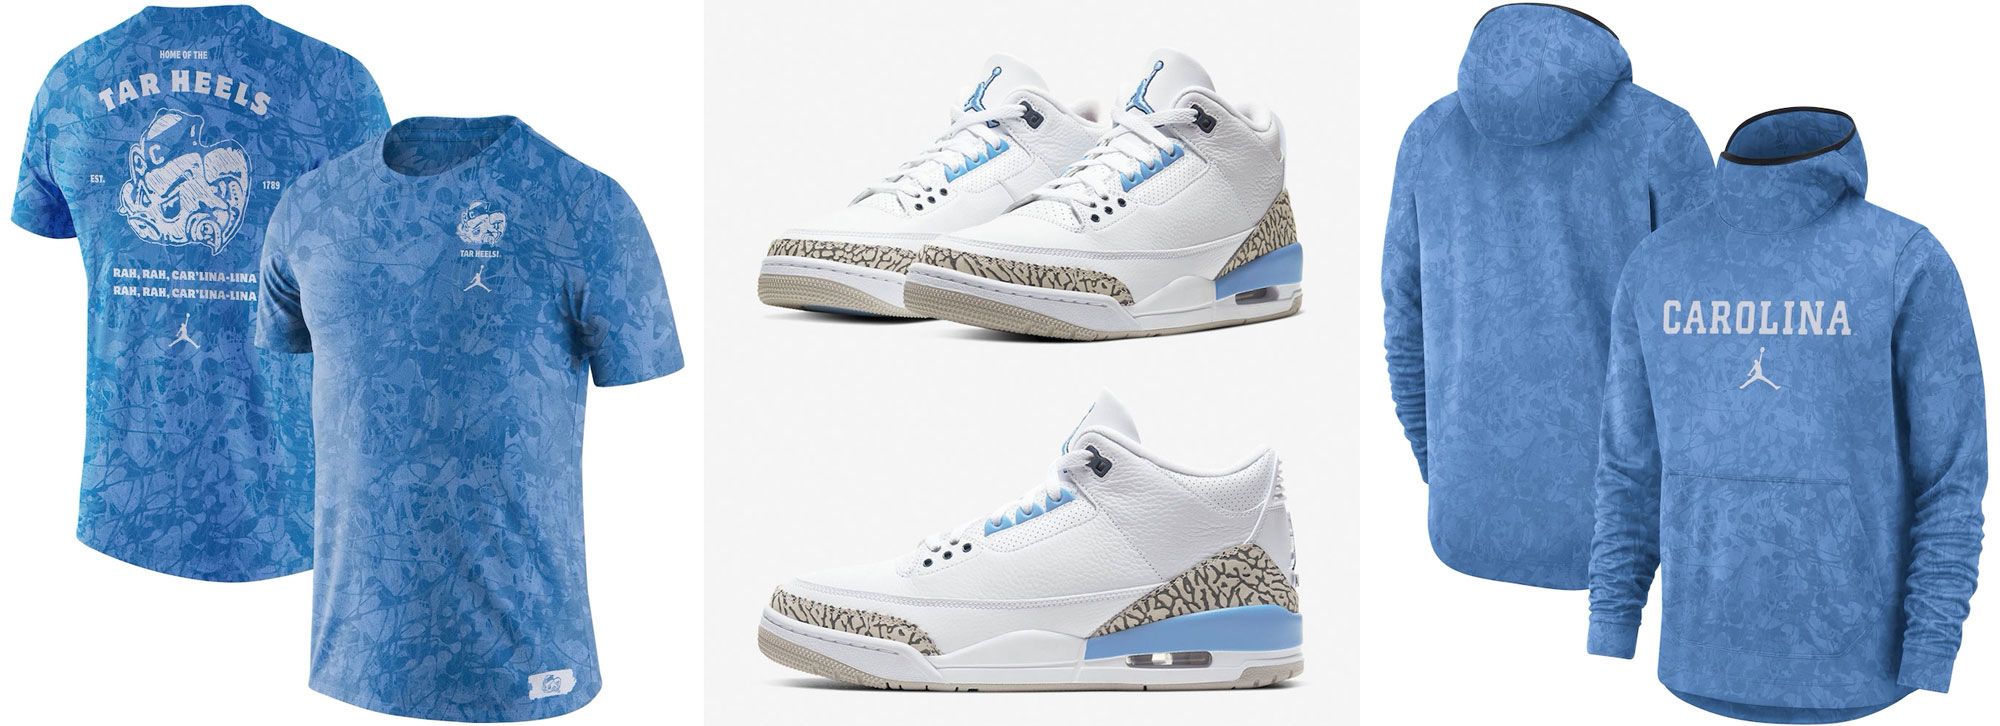 air-jordan-3-unc-tar-heels-clothing